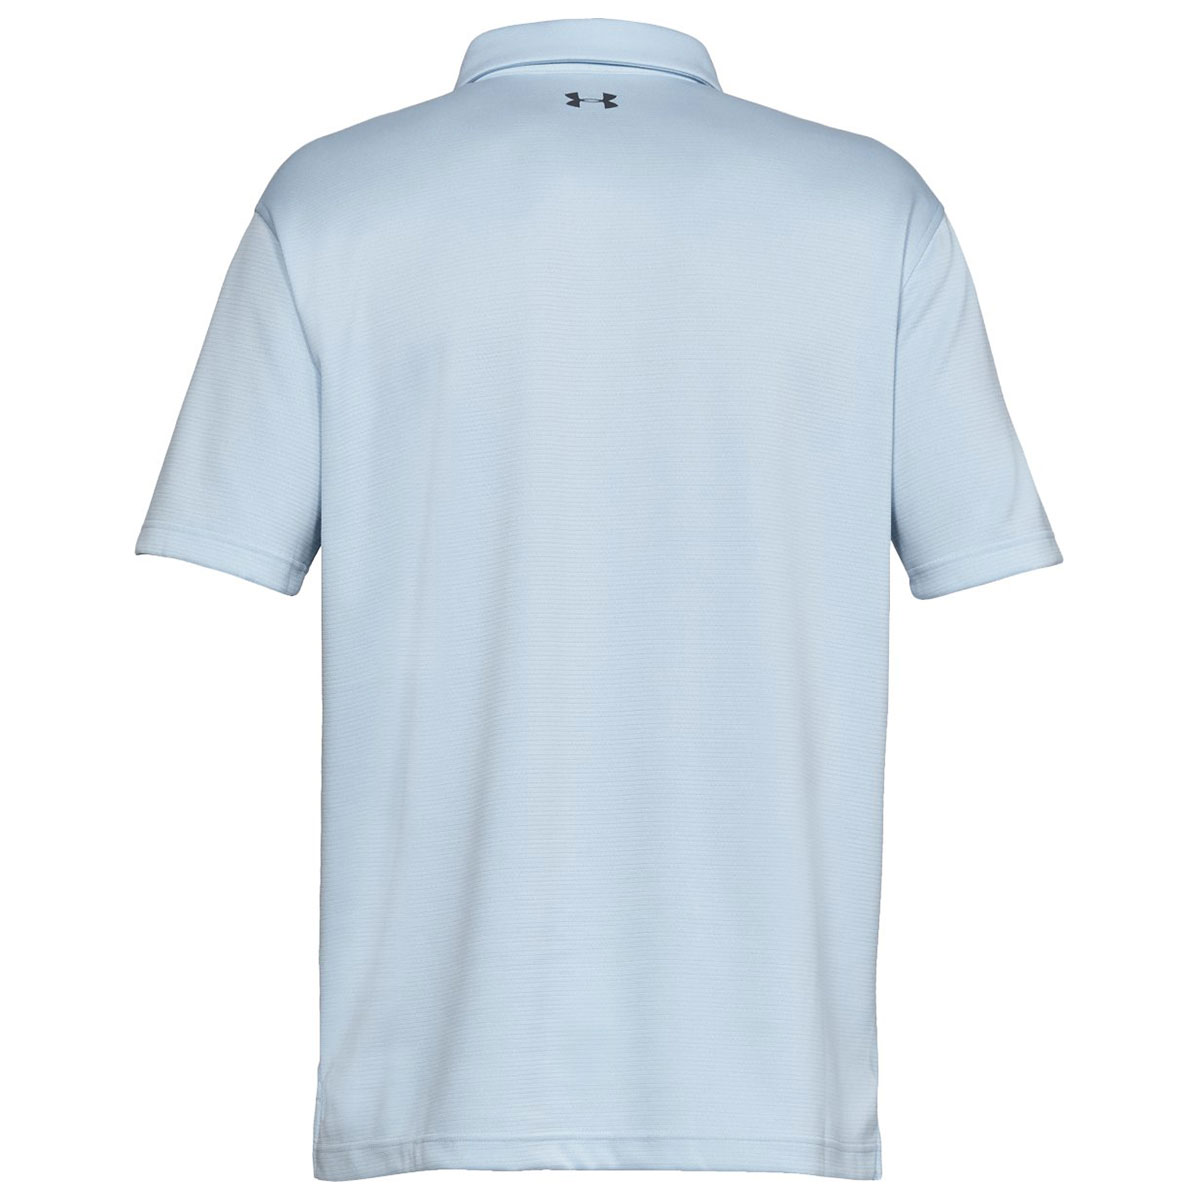 Under-Armour-Mens-Golf-Tech-Wicking-Textured-Soft-Light-Polo-Shirt thumbnail 27